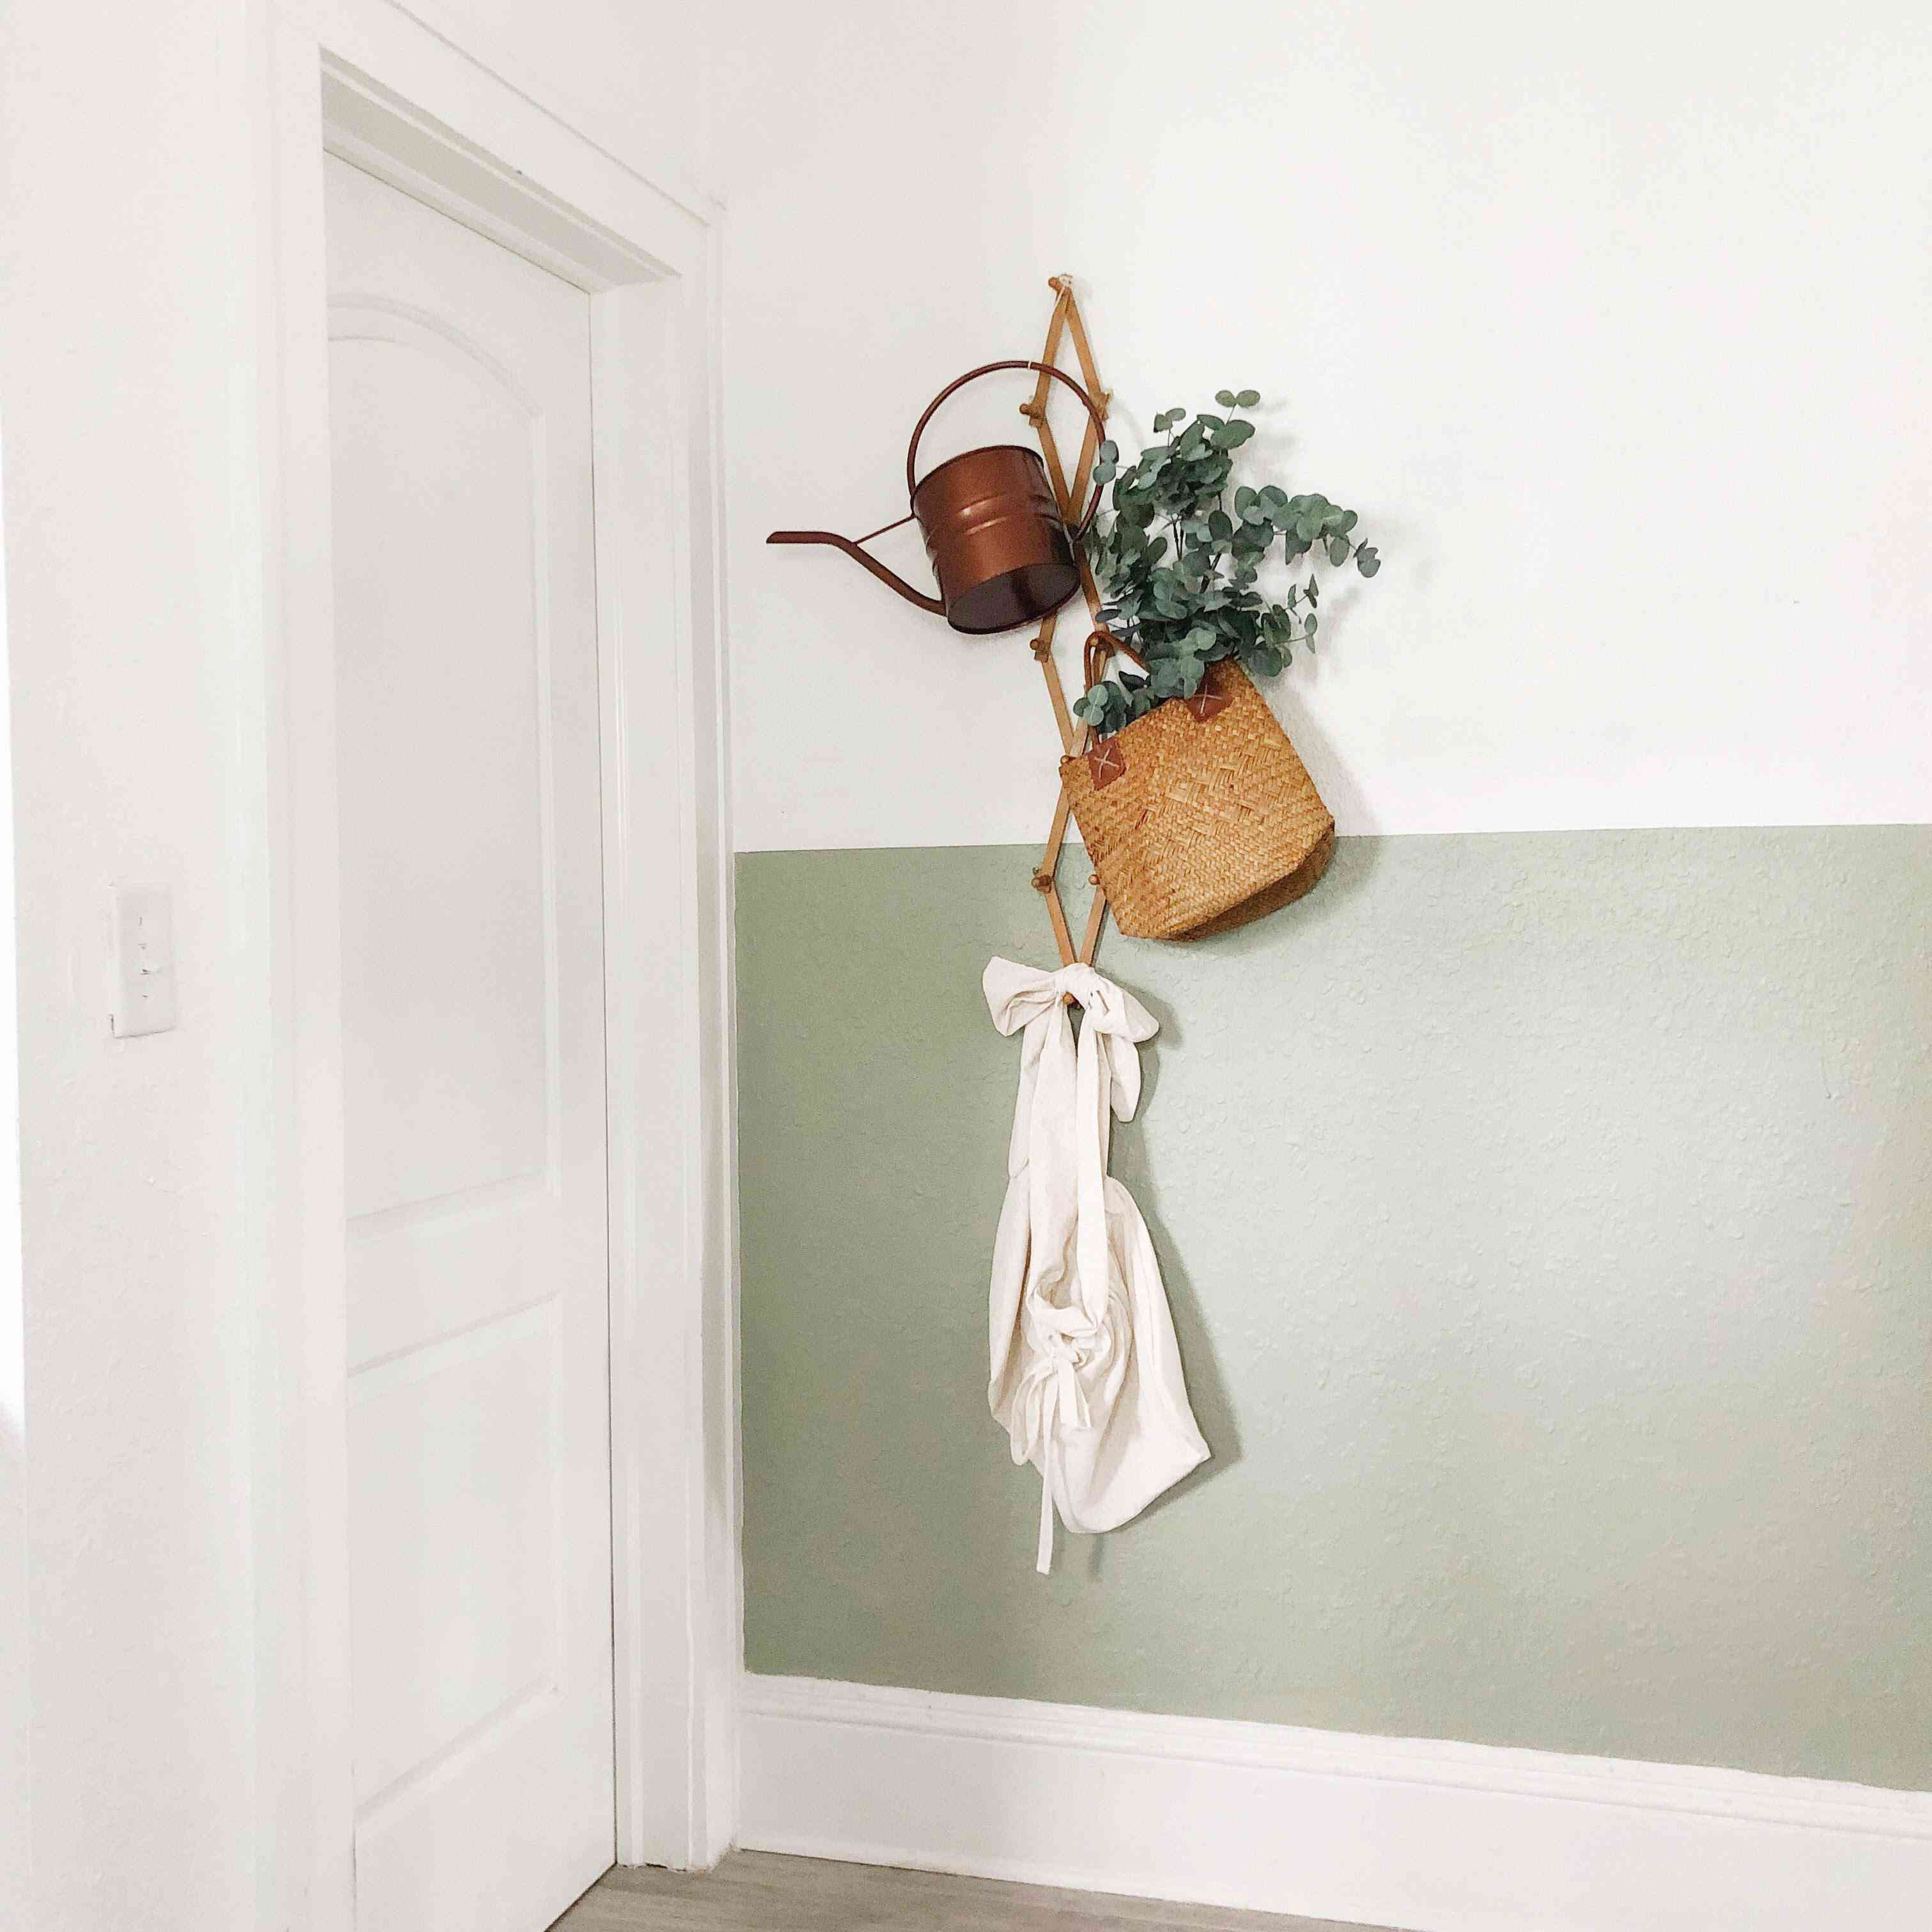 Half-painted wall with plant decor by home designer Jessica Smith